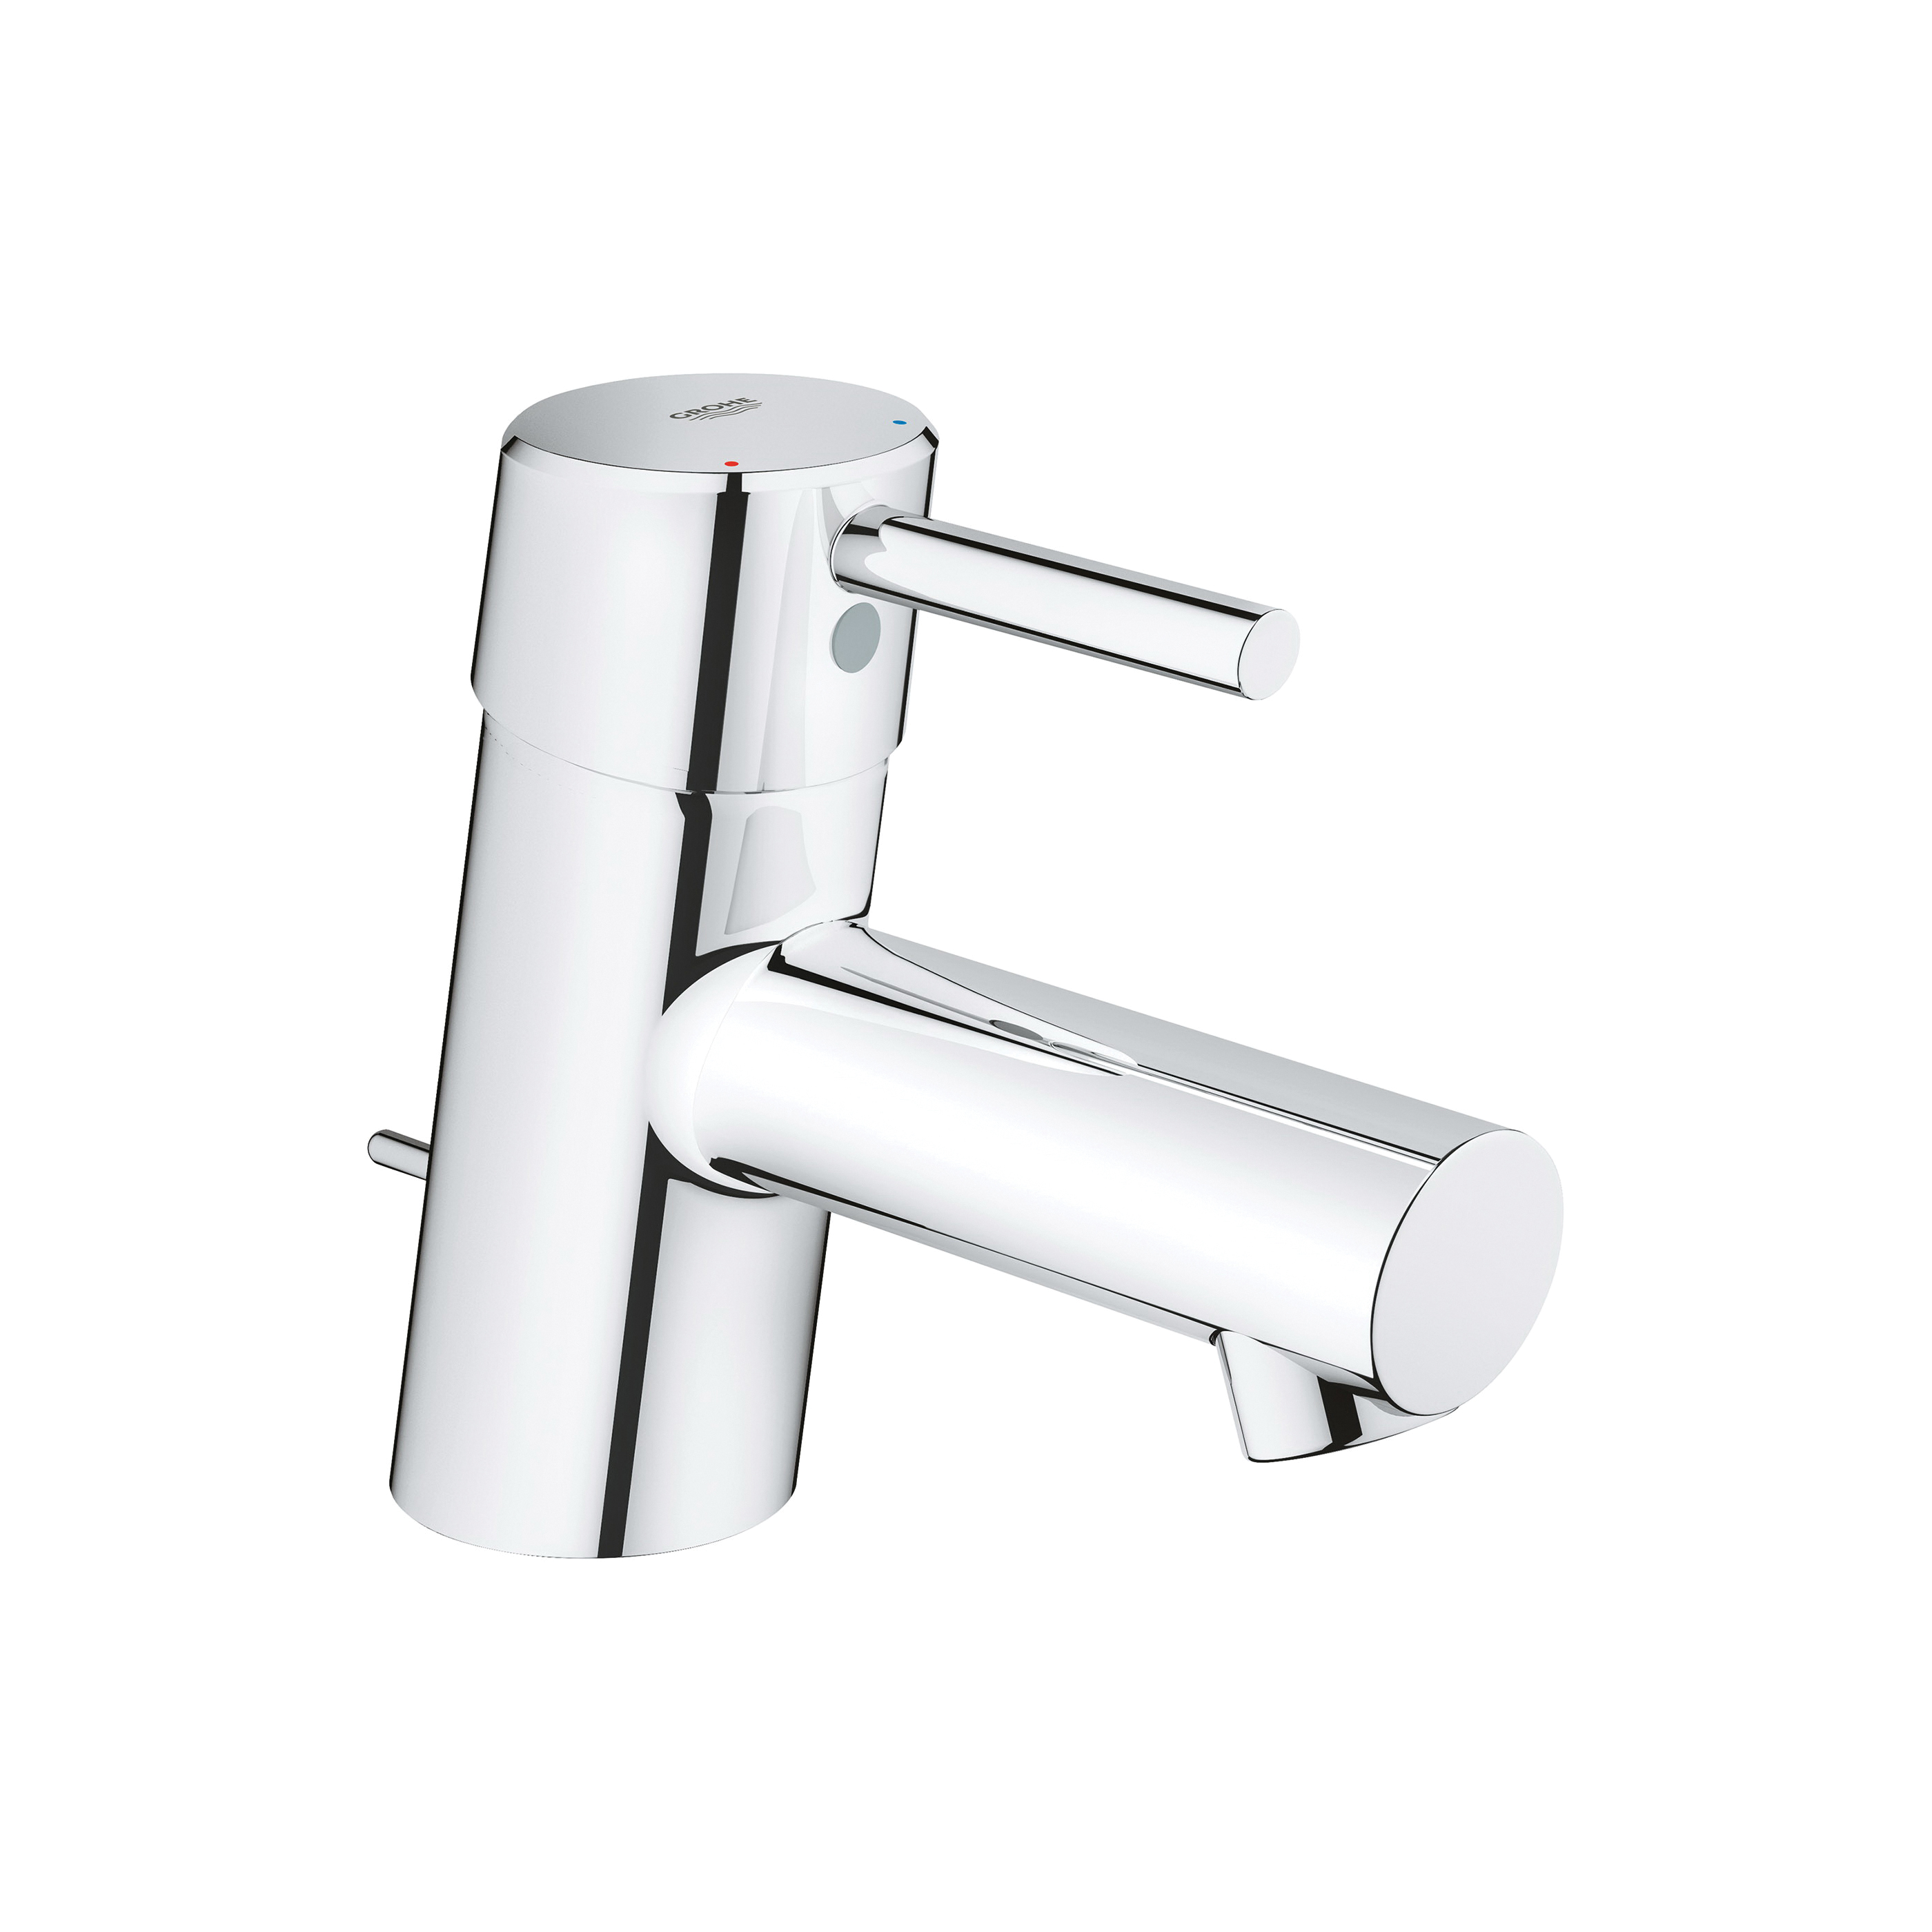 GROHE 34702001 Concetto Bathroom Basin Mixer, 2.2 gpm, 1-3/8 in H Spout, 1 Handle, Pop-Up Drain, 1 Faucet Hole, StarLight® Chrome, Import